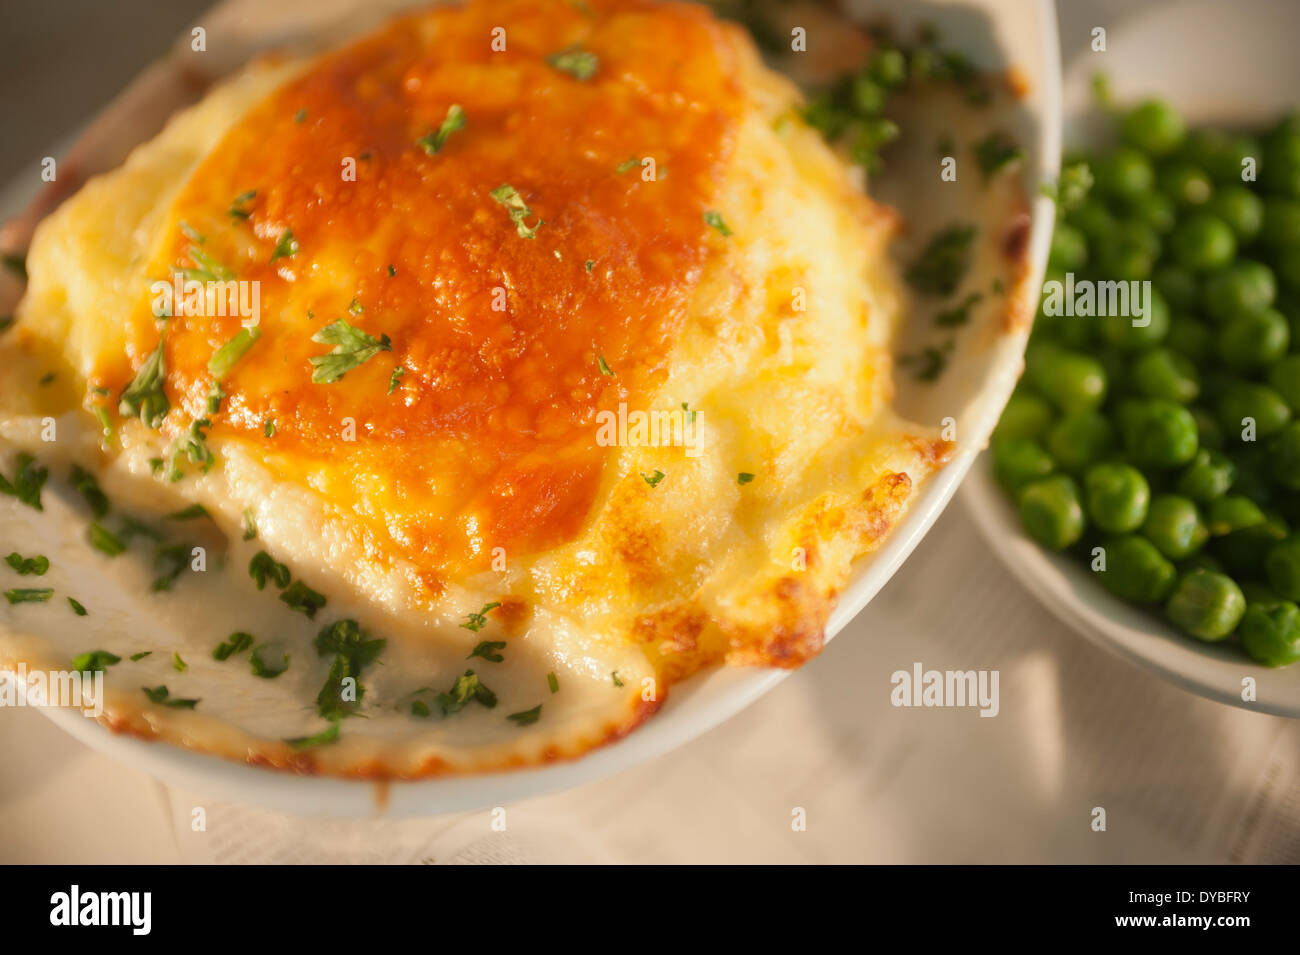 Fish and potato pie with a cheese topping and a side serving of garden peas. - Stock Image